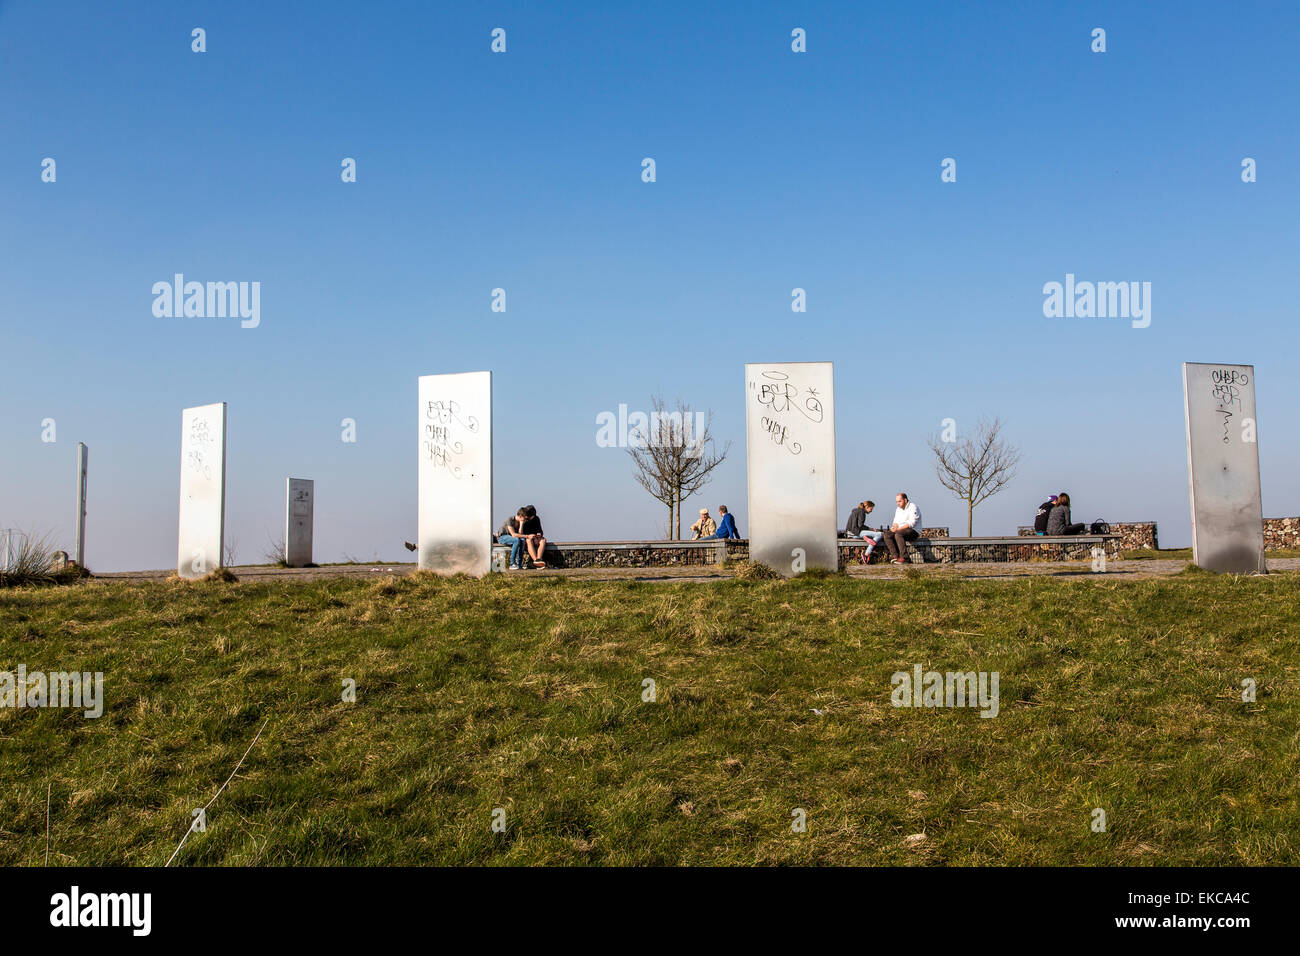 Top of Tippelsberg in Bochum, look over the central Ruhr area, totems made of steel, information boards, - Stock Image